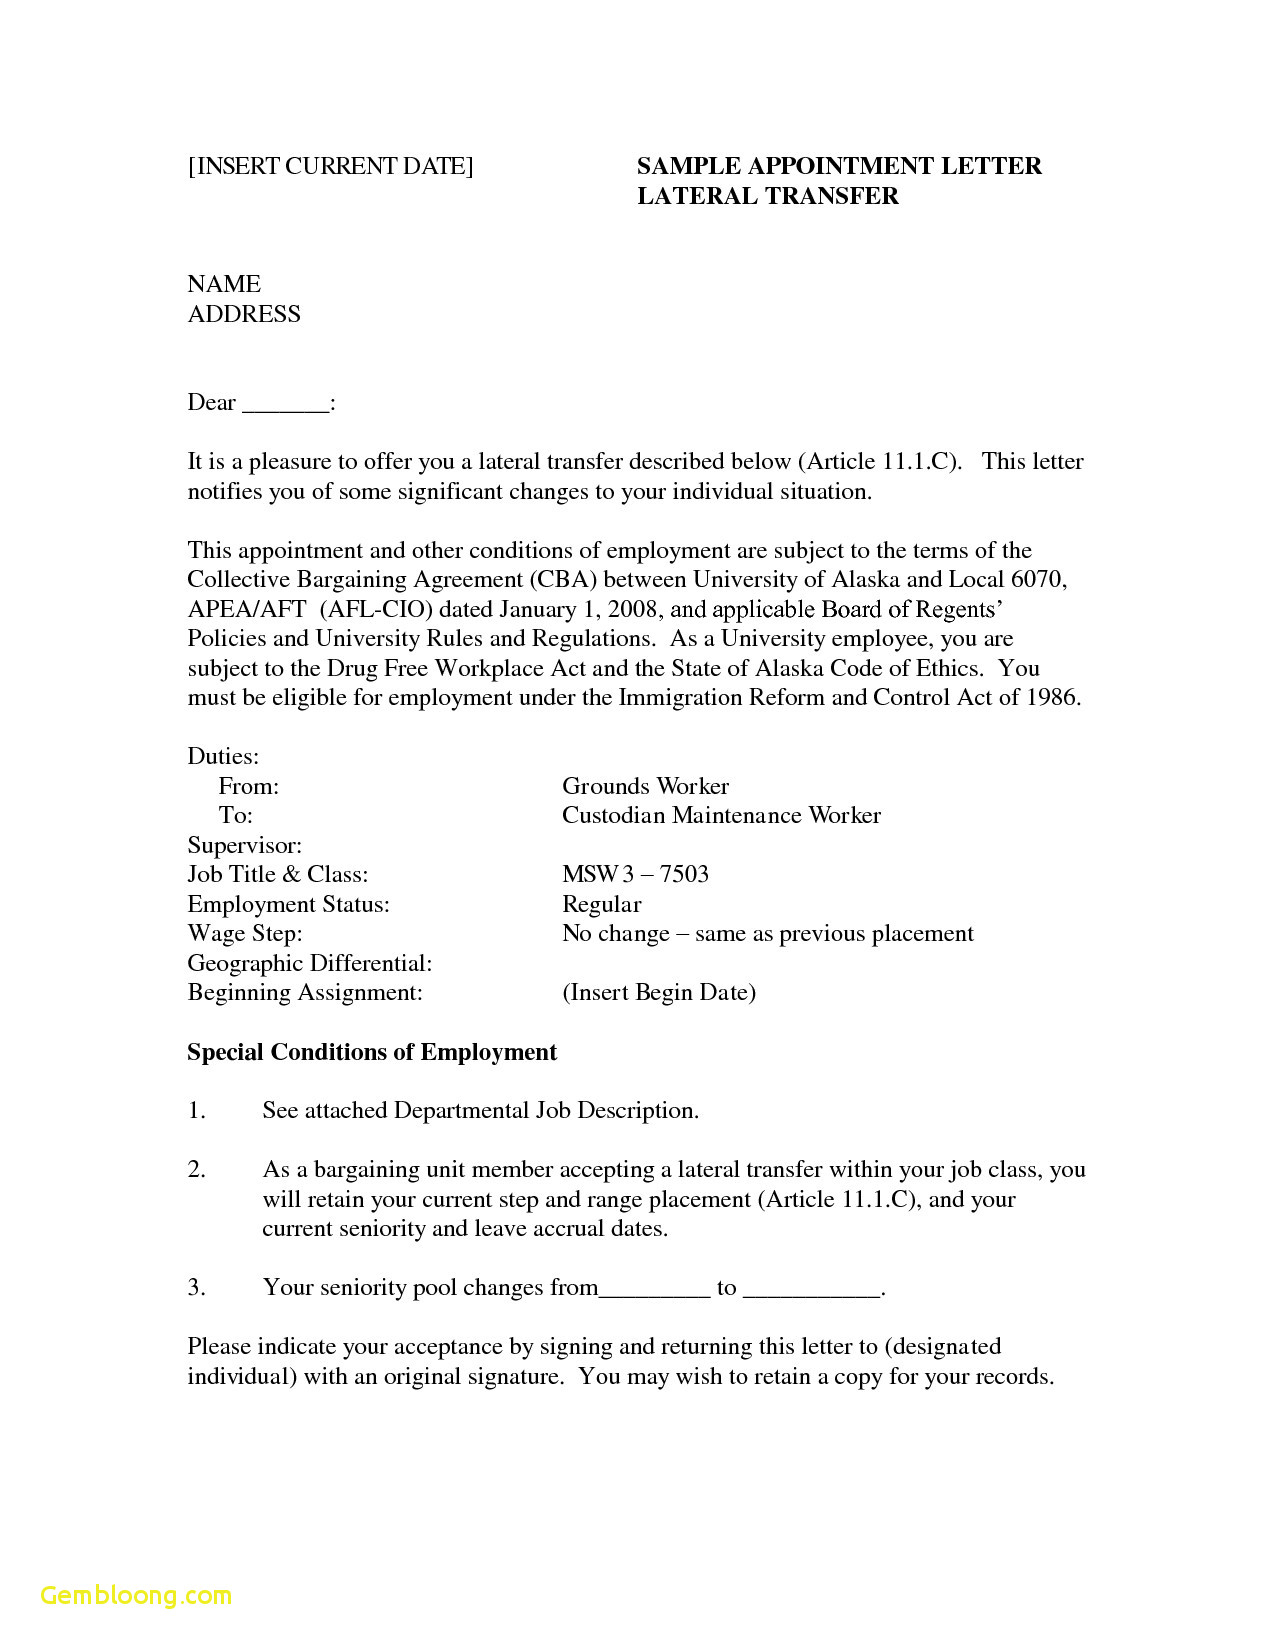 Quick Easy Cover Letter Template - Basic Resume for Any Job Download now Cover Letter Template Word